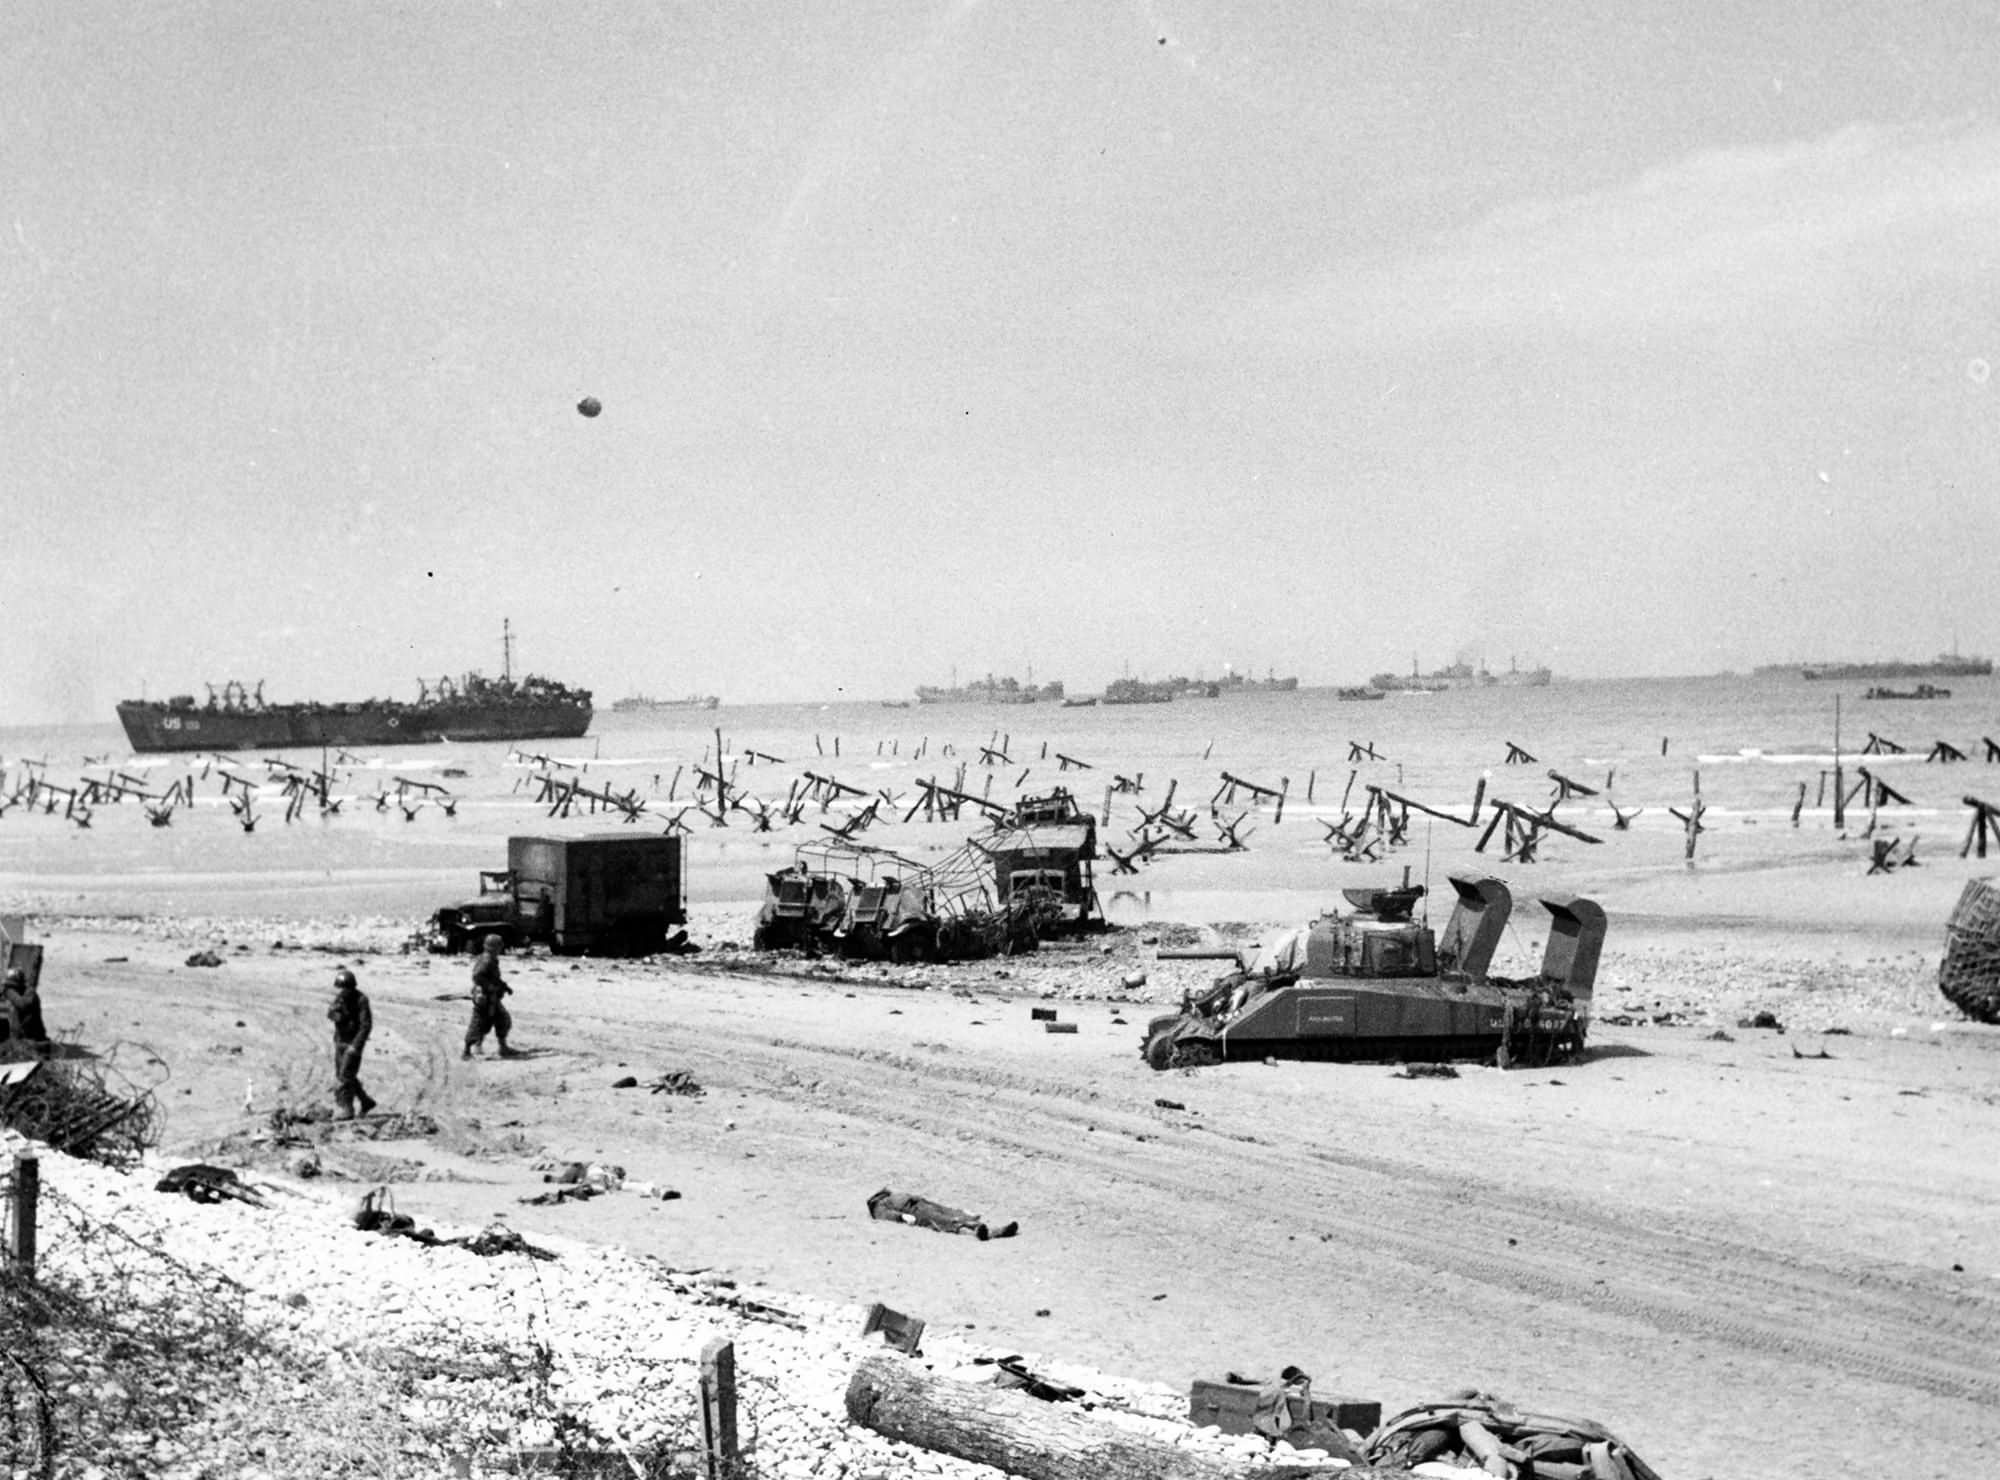 Scene on Omaha Beach on the afternoon of D-Day